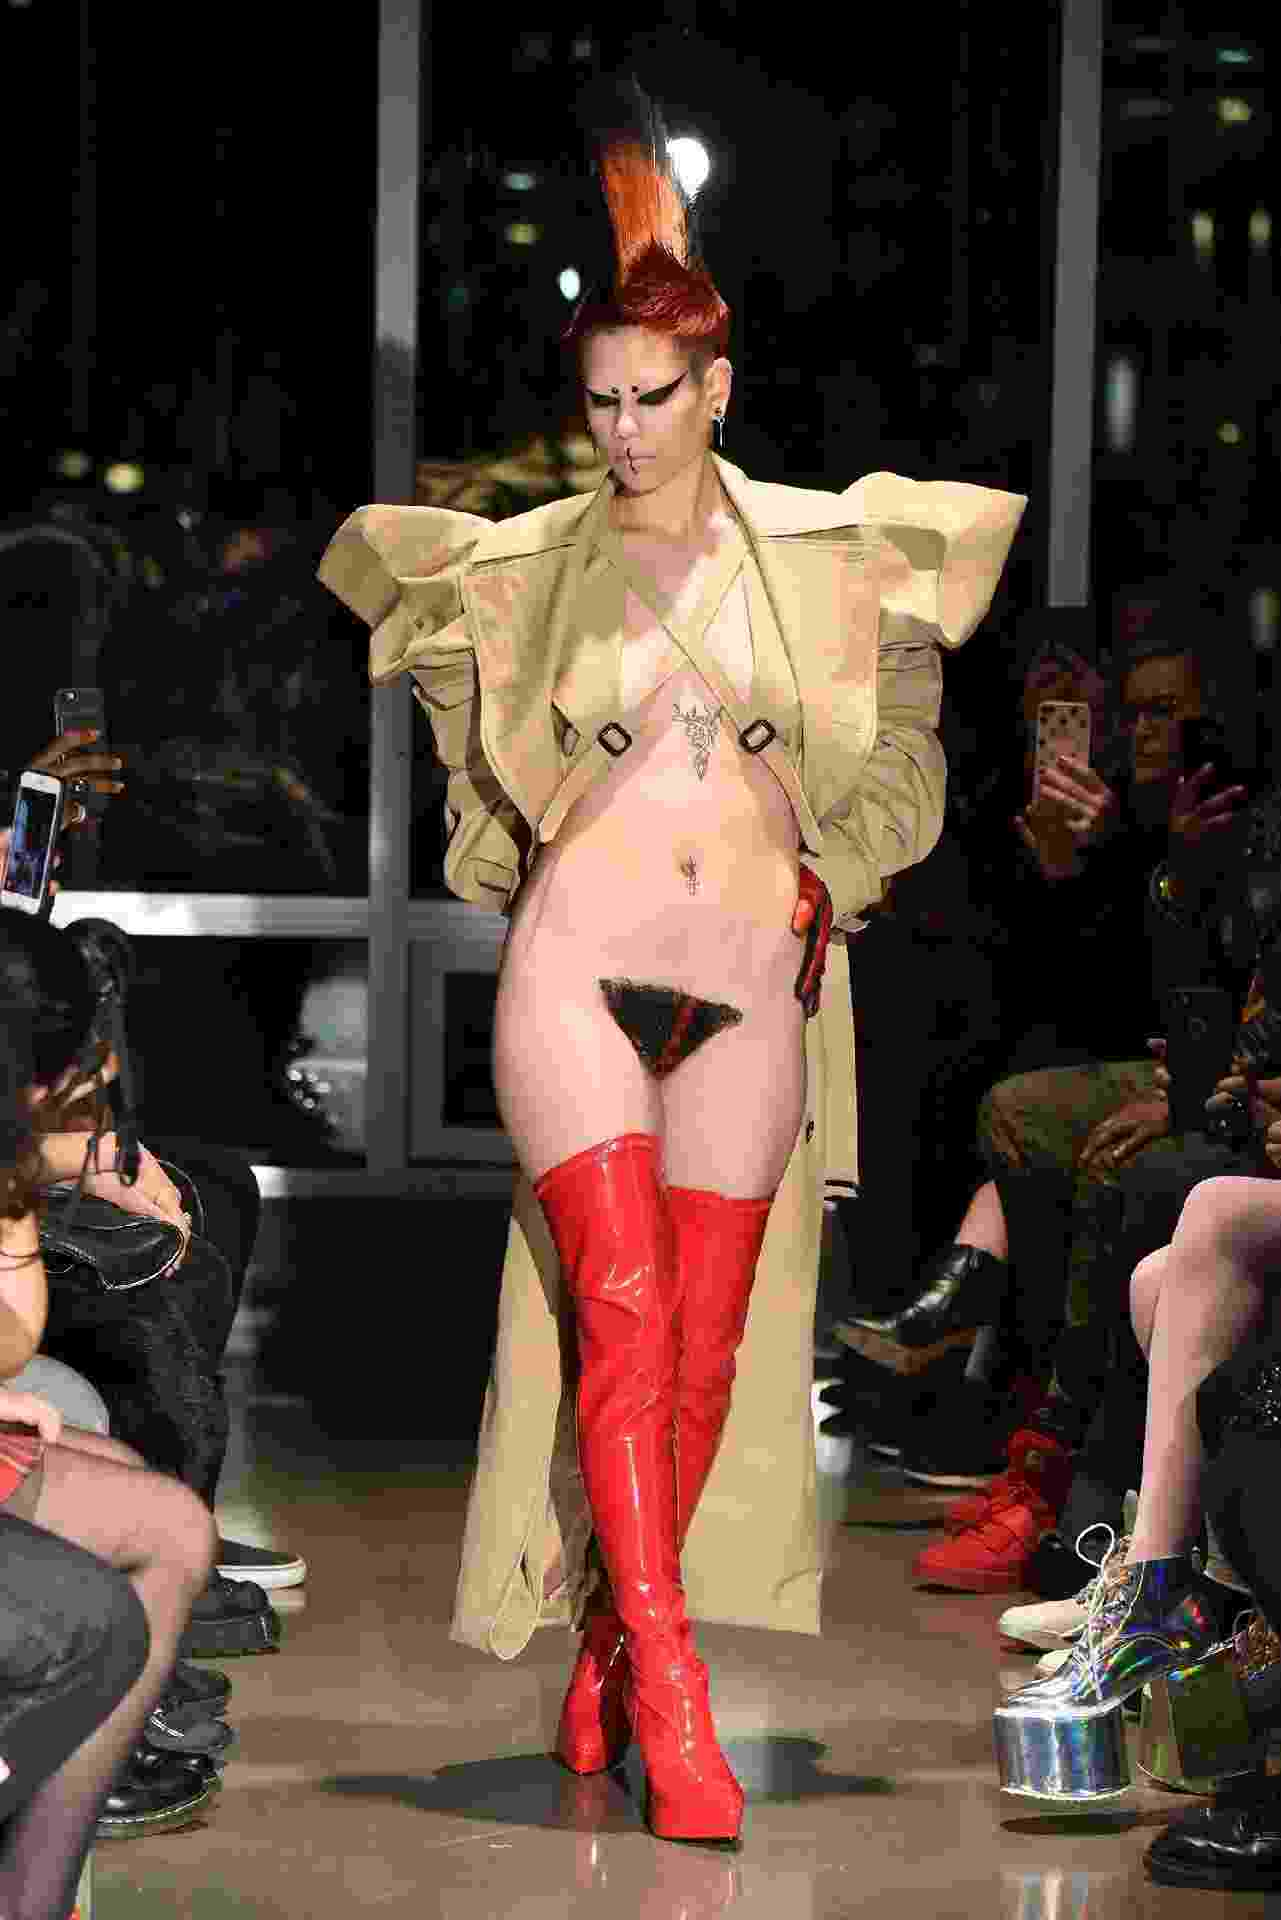 Modelo com merkin, peruca genital, durante o desfile da Kaimin na New York Fashion Week - Getty Images